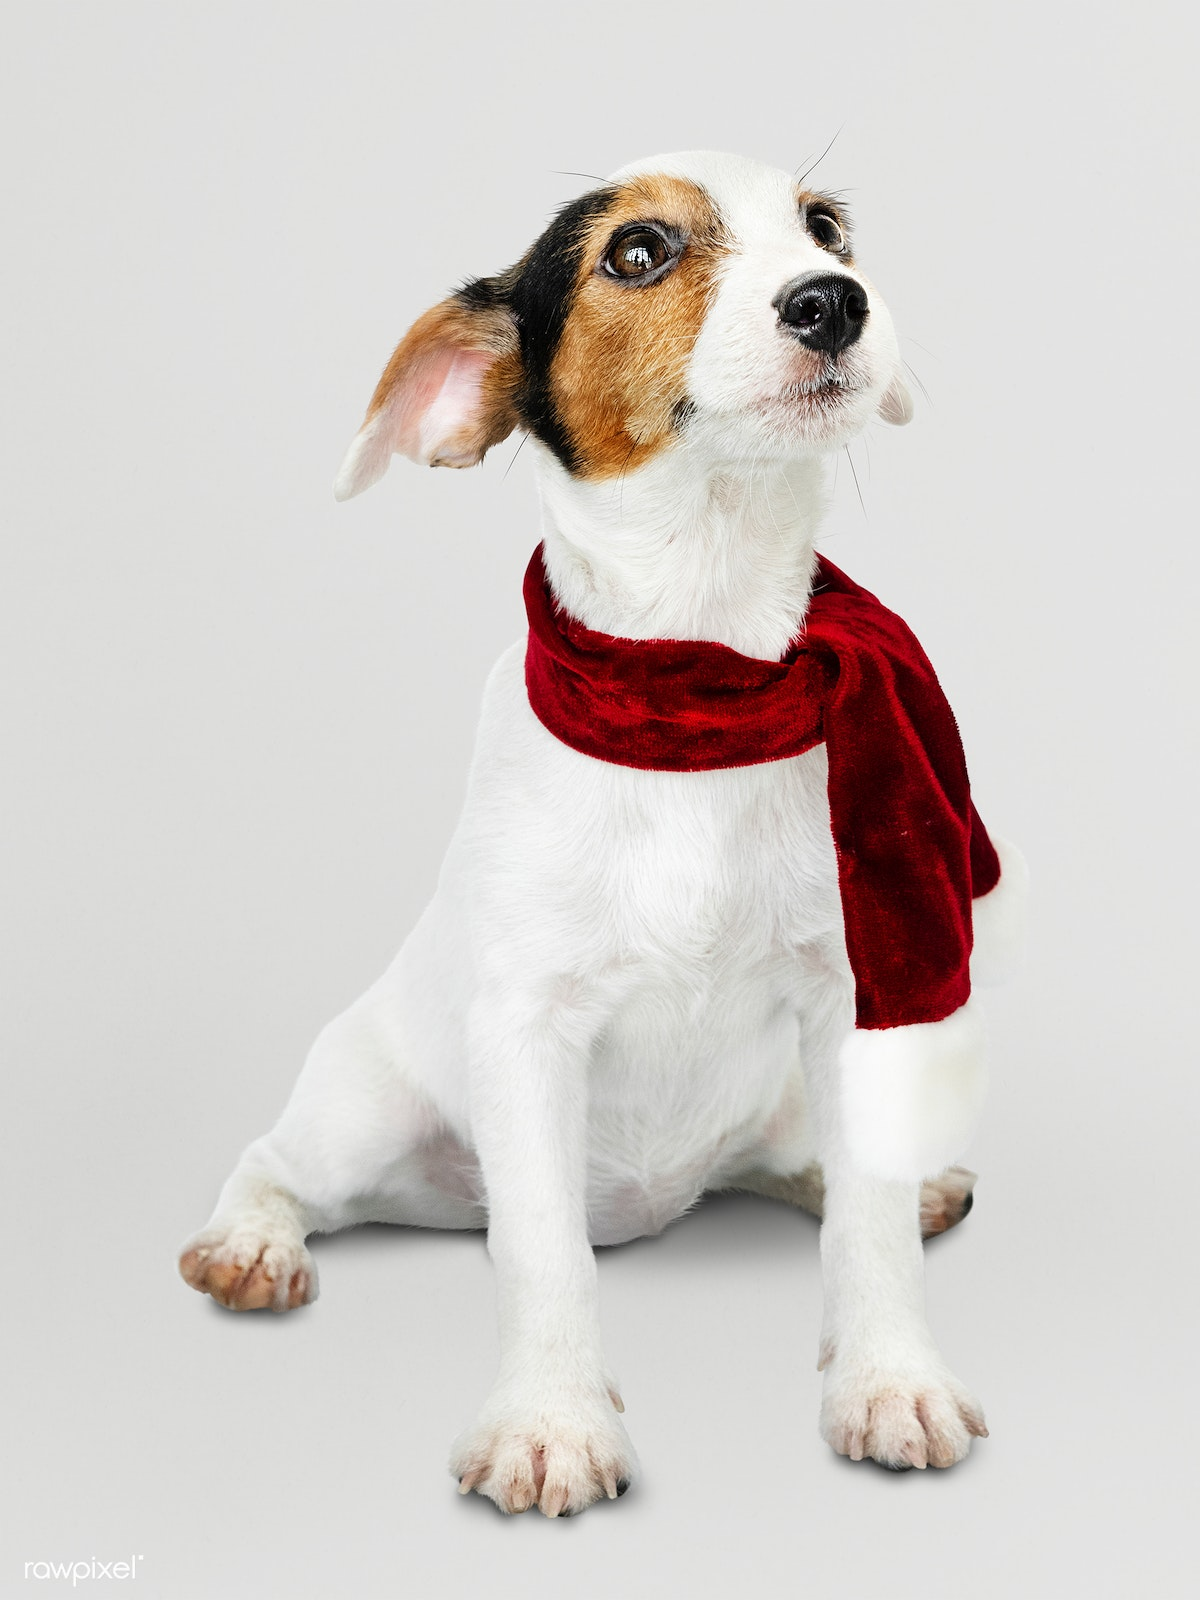 Download premium psd of Adorable Jack Russell Retriever puppy wearing a